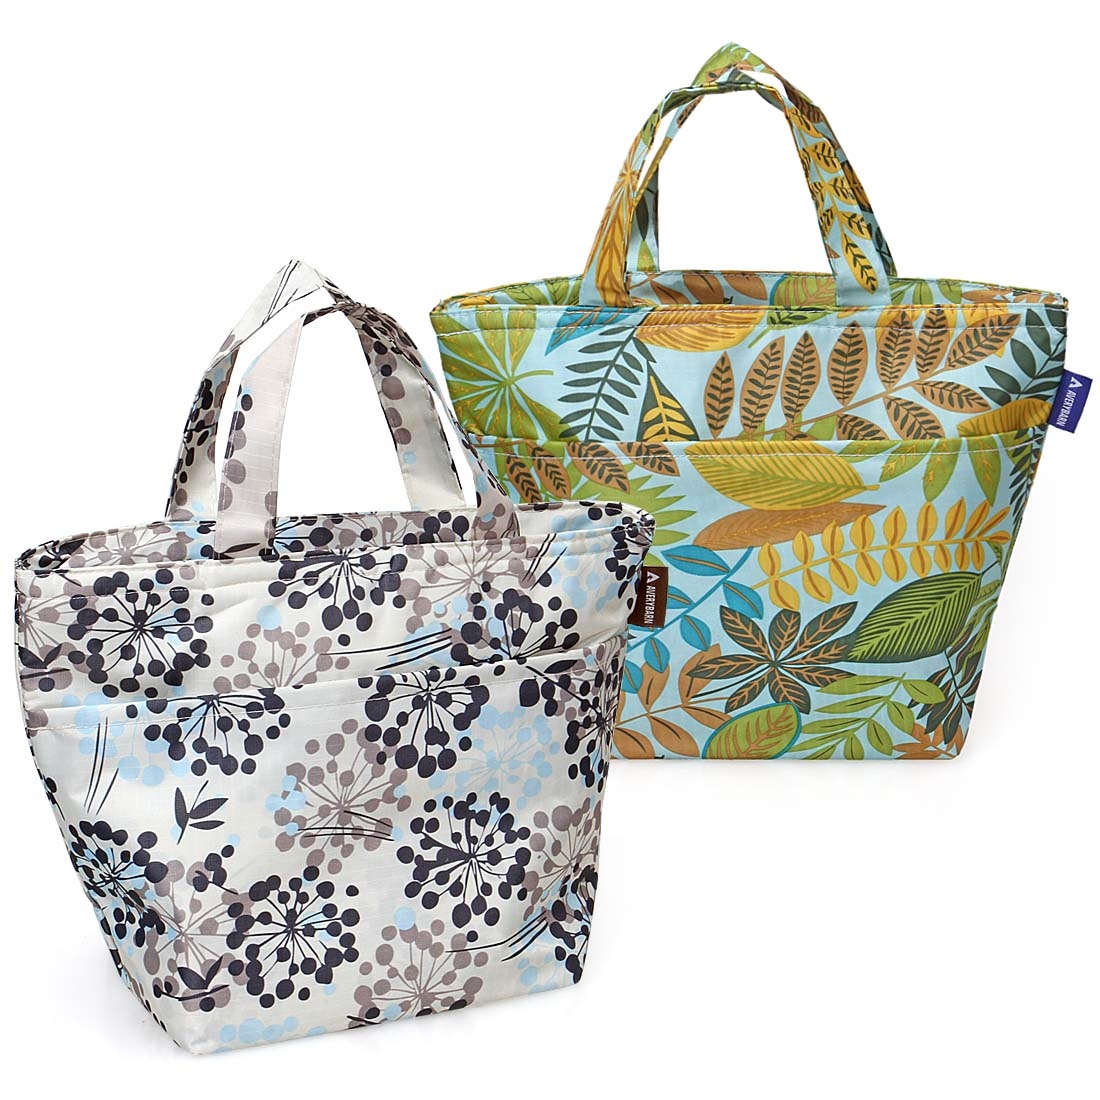 Avery Barn 2pc Various Design Insulated Cooler Picnic Tote Style Lunch Bag Set